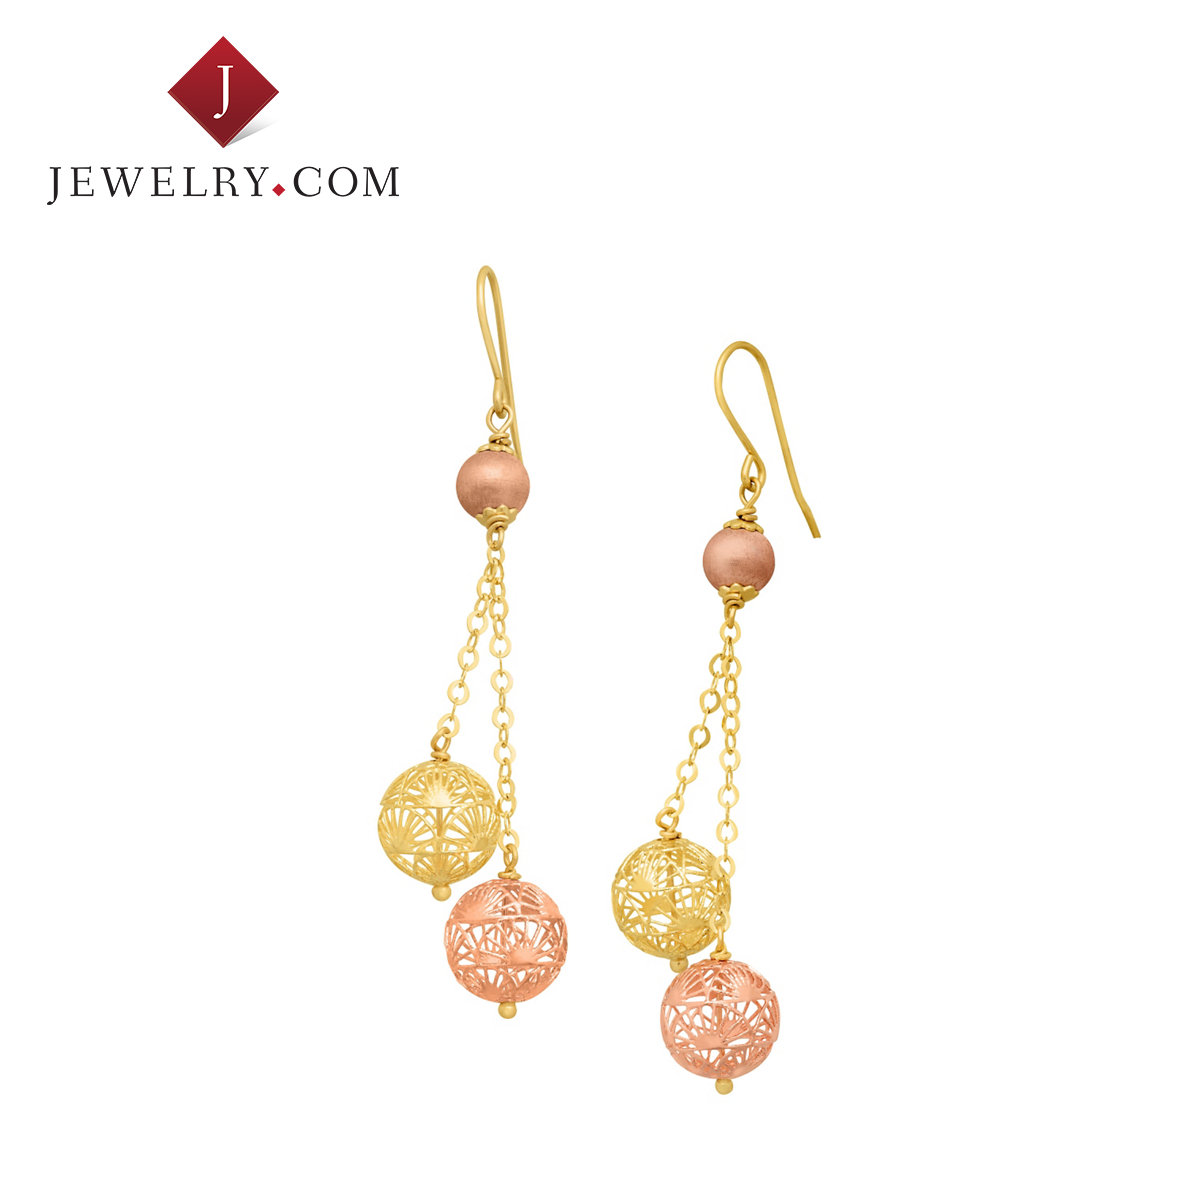 Jewelry.com official k gold color gold and silver silk elegant charm earrings temperament ladies fashion items